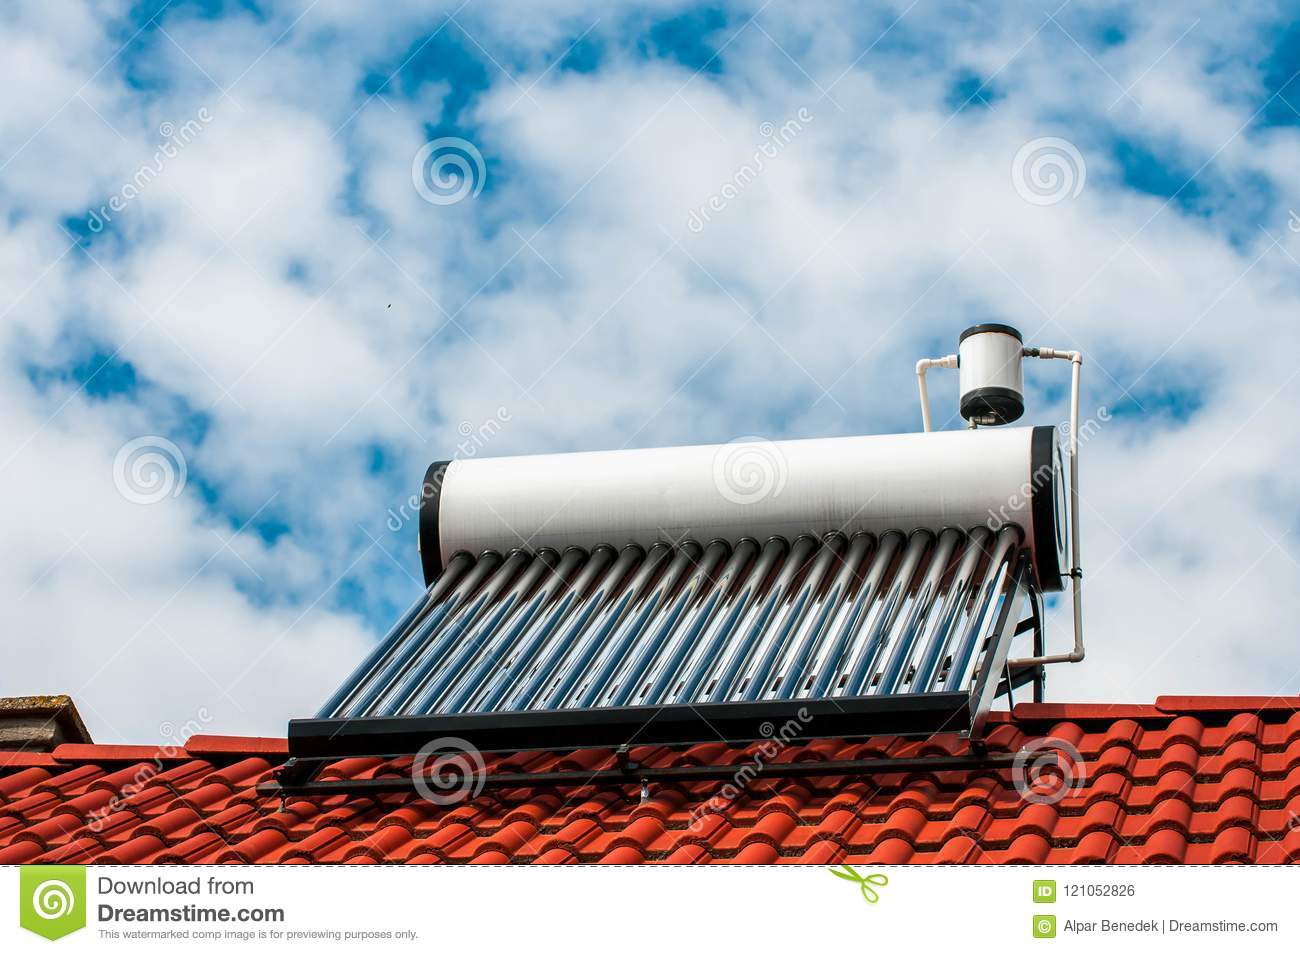 Solar Water Heater Boiler On Residentual House Rooftop Stock Photo ...